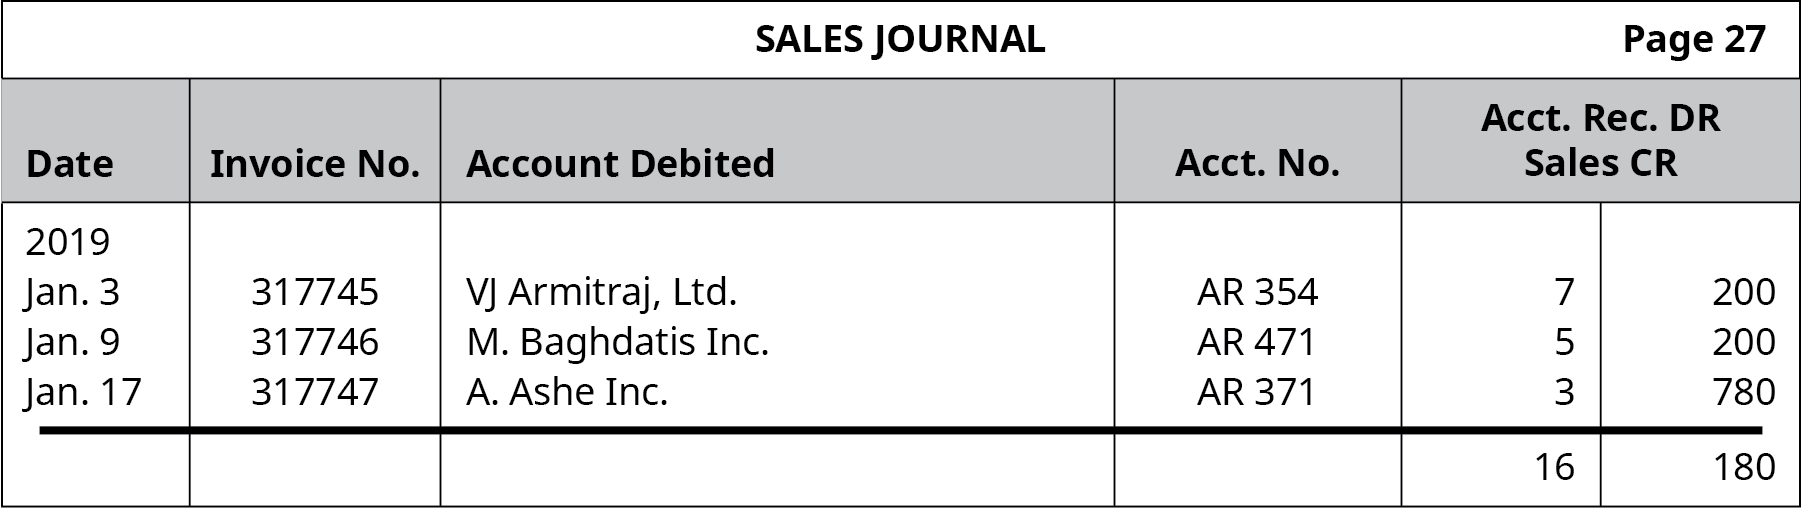 Sales Journal, page 27. Six columns, labeled left to right: Date, Invoice Number, Account Debited, Account Number, Accounts Receivable DR, Sales CR. Line One: January 3, 2019; 317745; VJ Armitraj, Ltd; AR 354; 7; 200. Line Two: January 9, 2019; 317746; M. Baghdatis Inc.; AR 471; 5; 200. Line Three: January 17, 2019; 317747; A. Ashe Inc.; AR 371; 3; 780. Line Four: Blank; Blank; Blank; Blank; 16; 180.